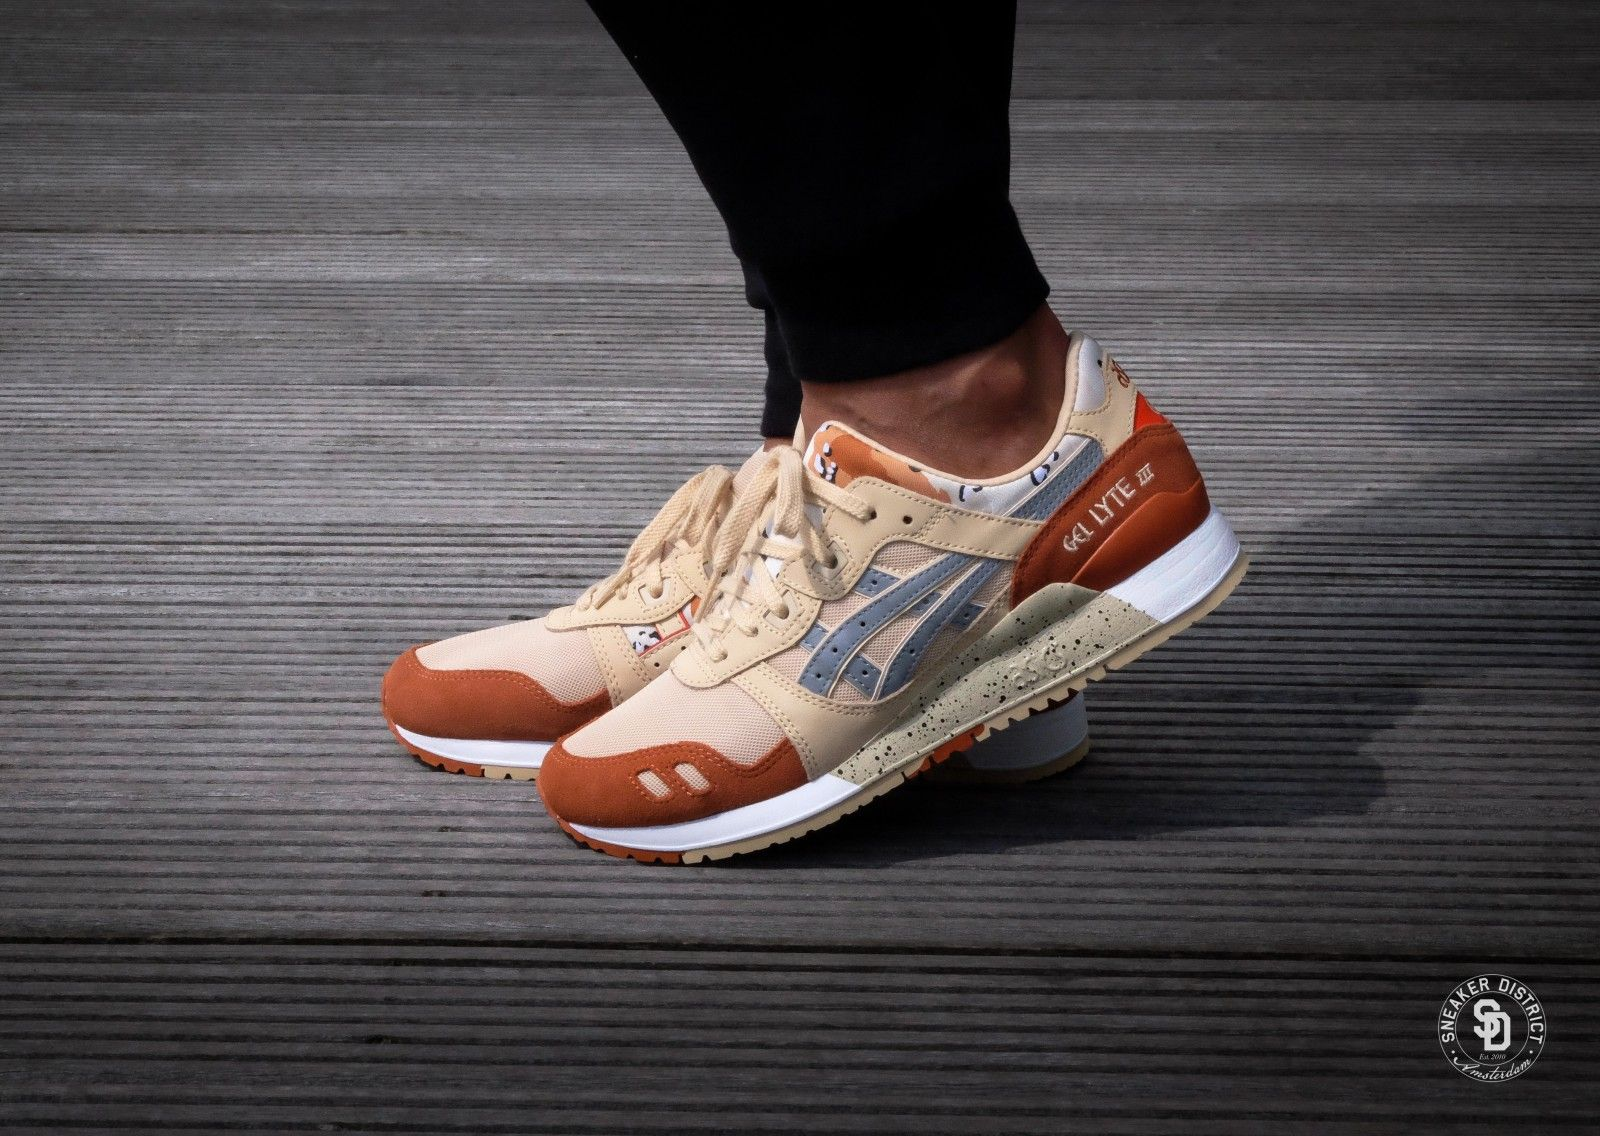 separation shoes 20fbb 07a2e Asics Gel Lyte III Marzipan/Silver - H7Y0L-0593 | •Clothes•